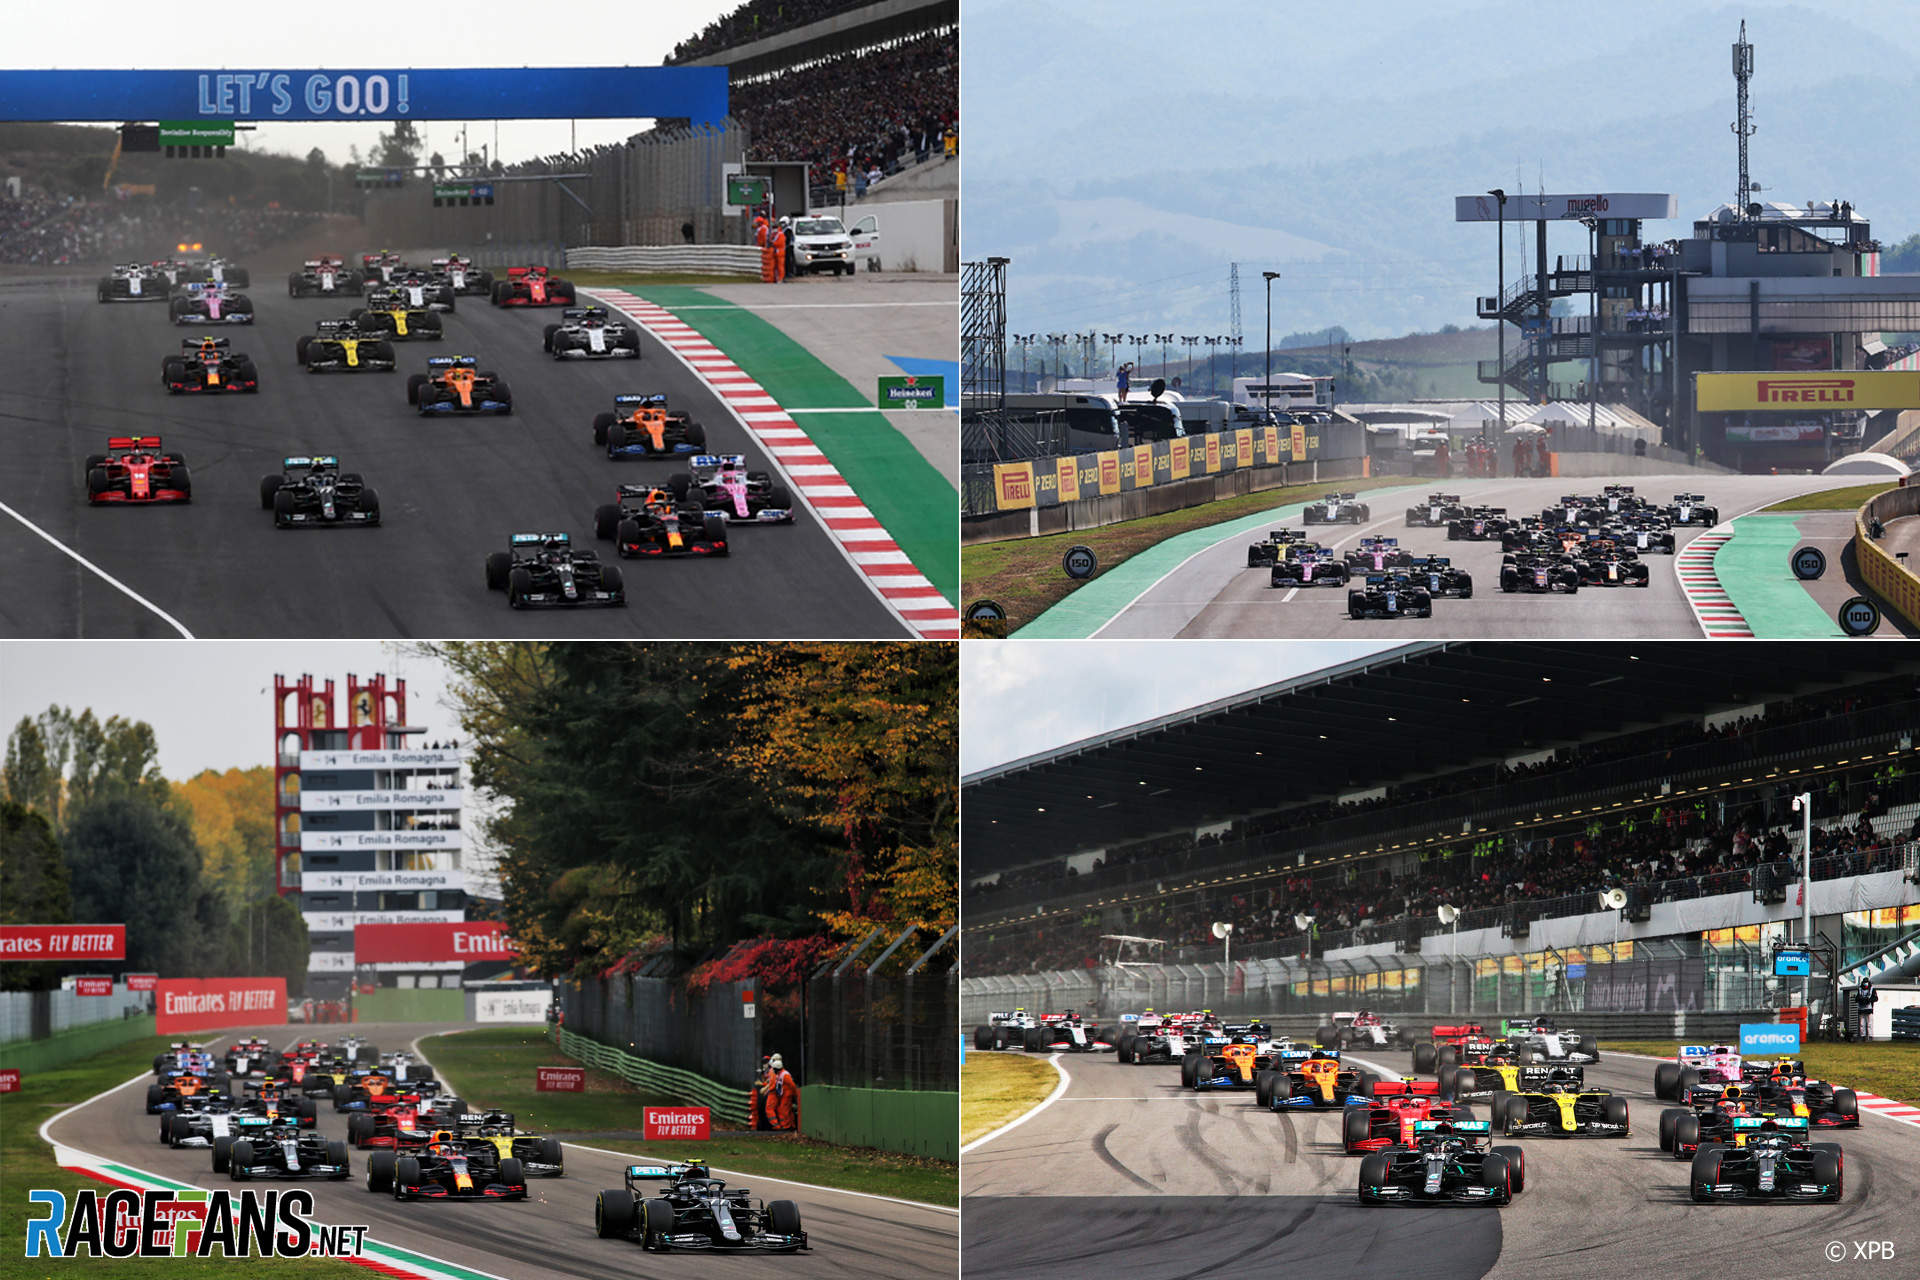 2021 F1 Calendar Which Race Should Fill The Empty Slot Racefans